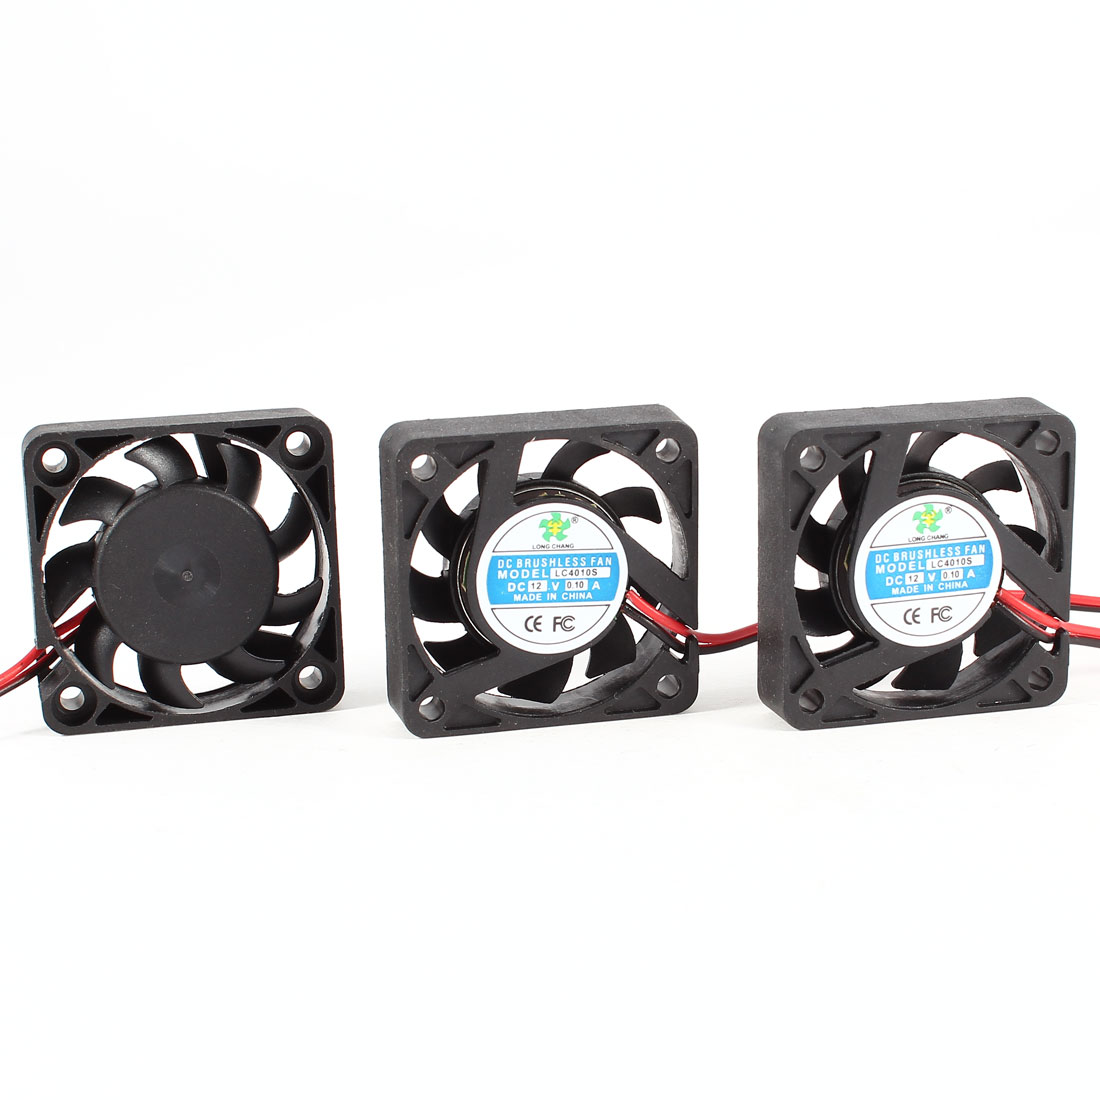 3 Pcs 4cm 2 Pole DC Brushless 12VDC 0.10A CPU Cooler Cooling Fan Black